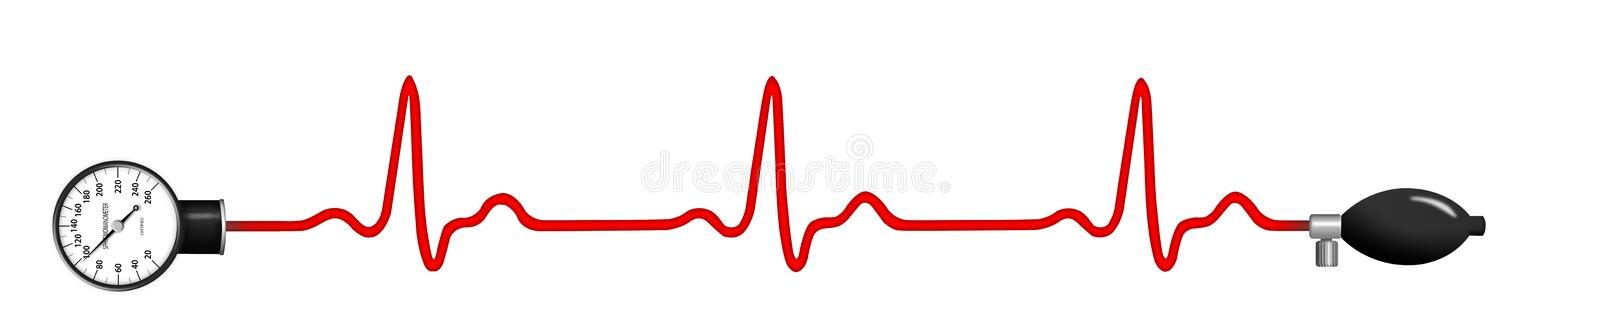 ECG pulse graph with blood pressure gauge vector illustration